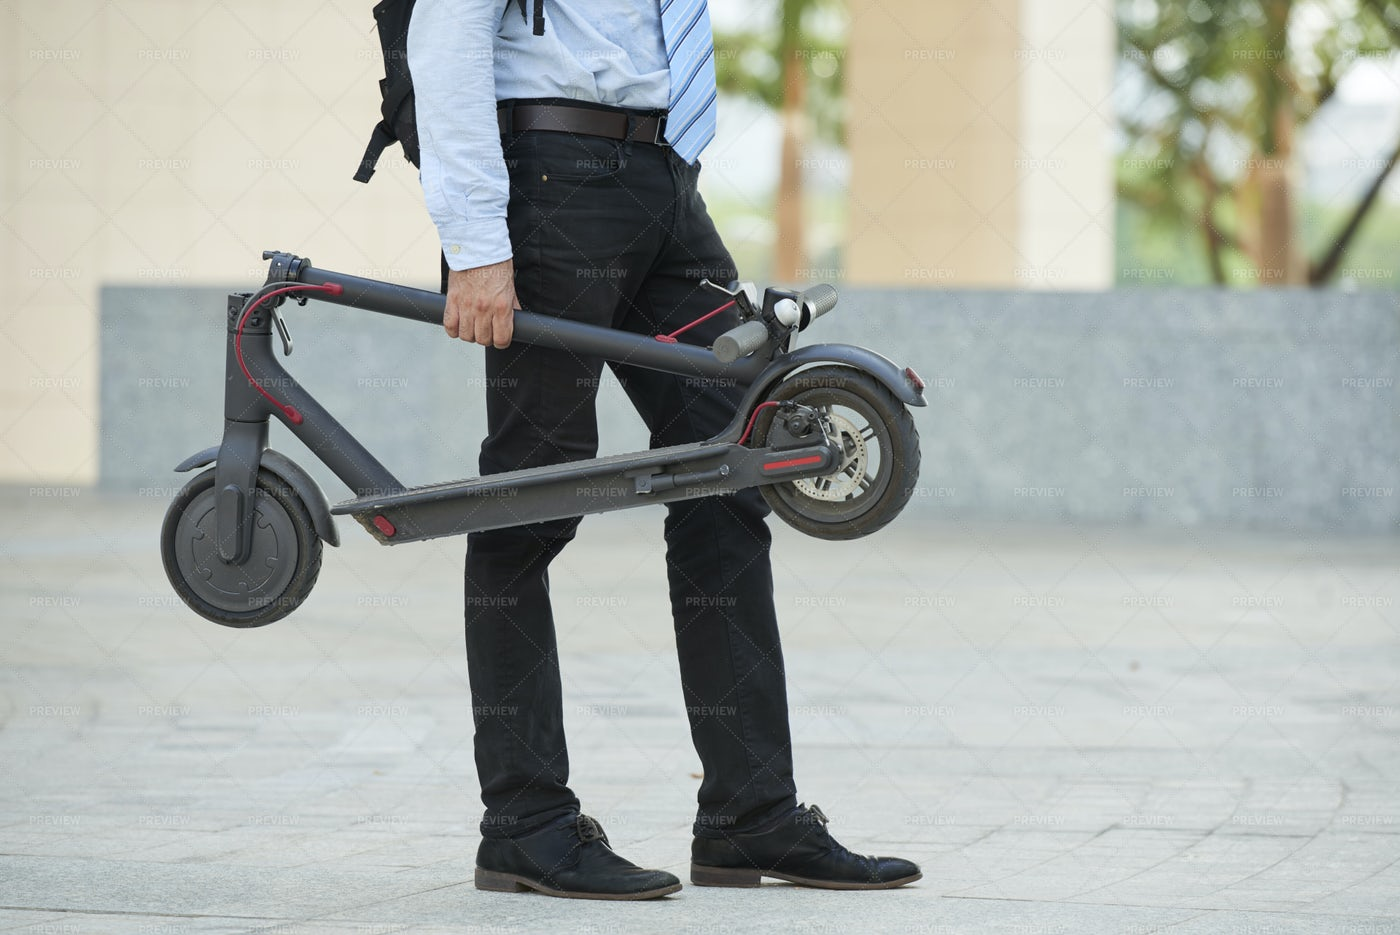 Man With Scooter Standing Outdoors: Stock Photos